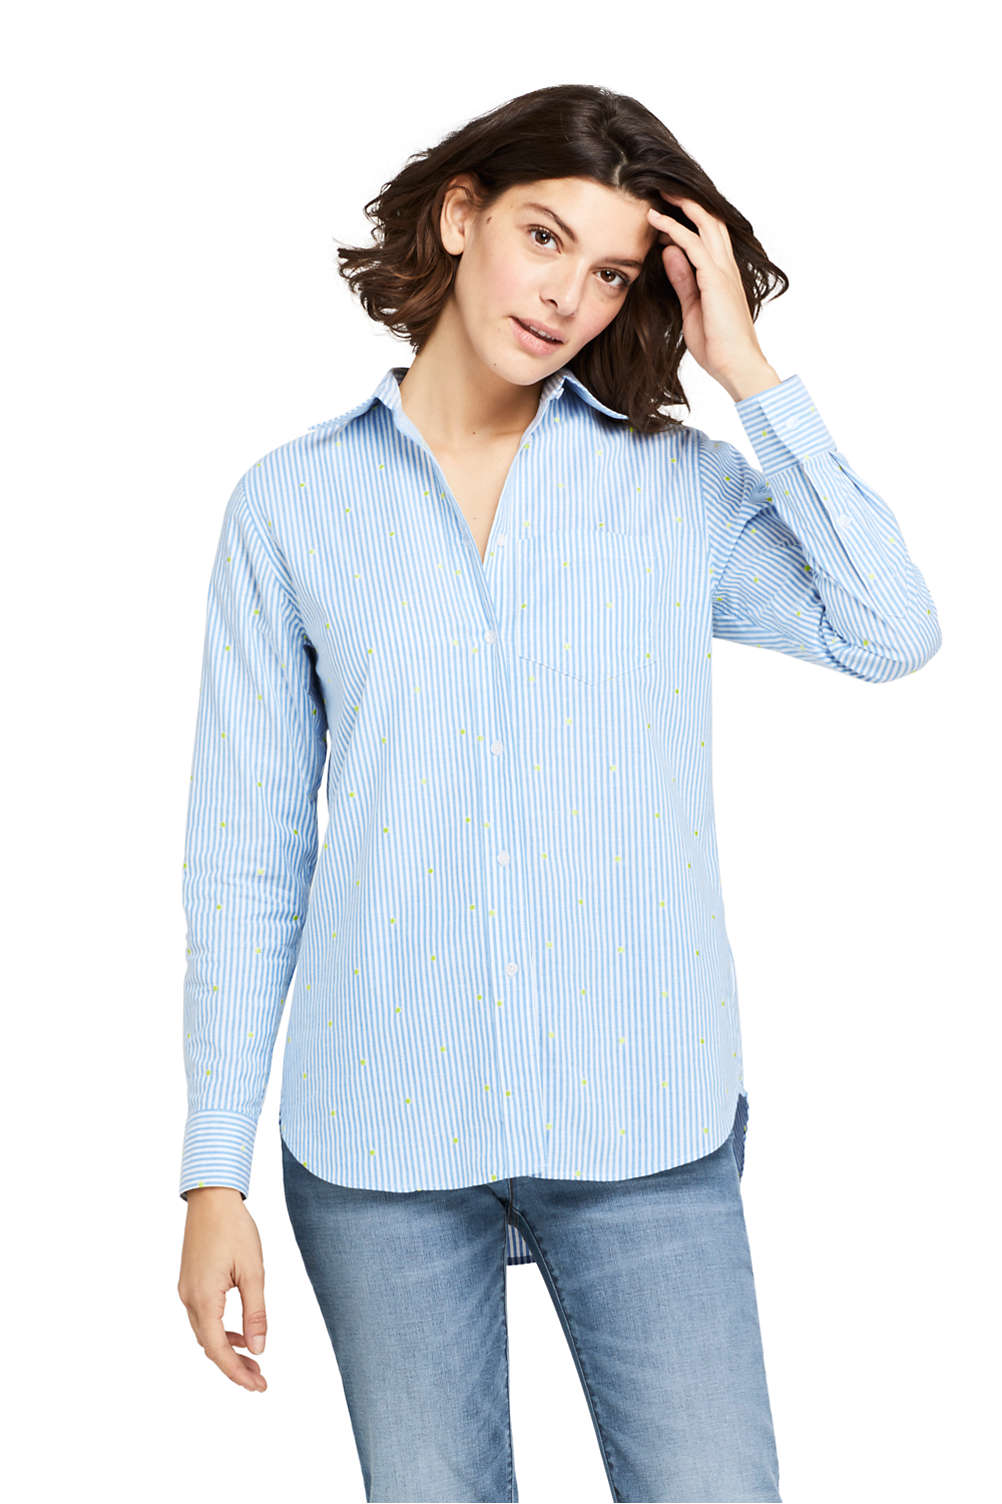 3a77e4c552c15 Women's Oxford Boyfriend Embroidery Shirt from Lands' End